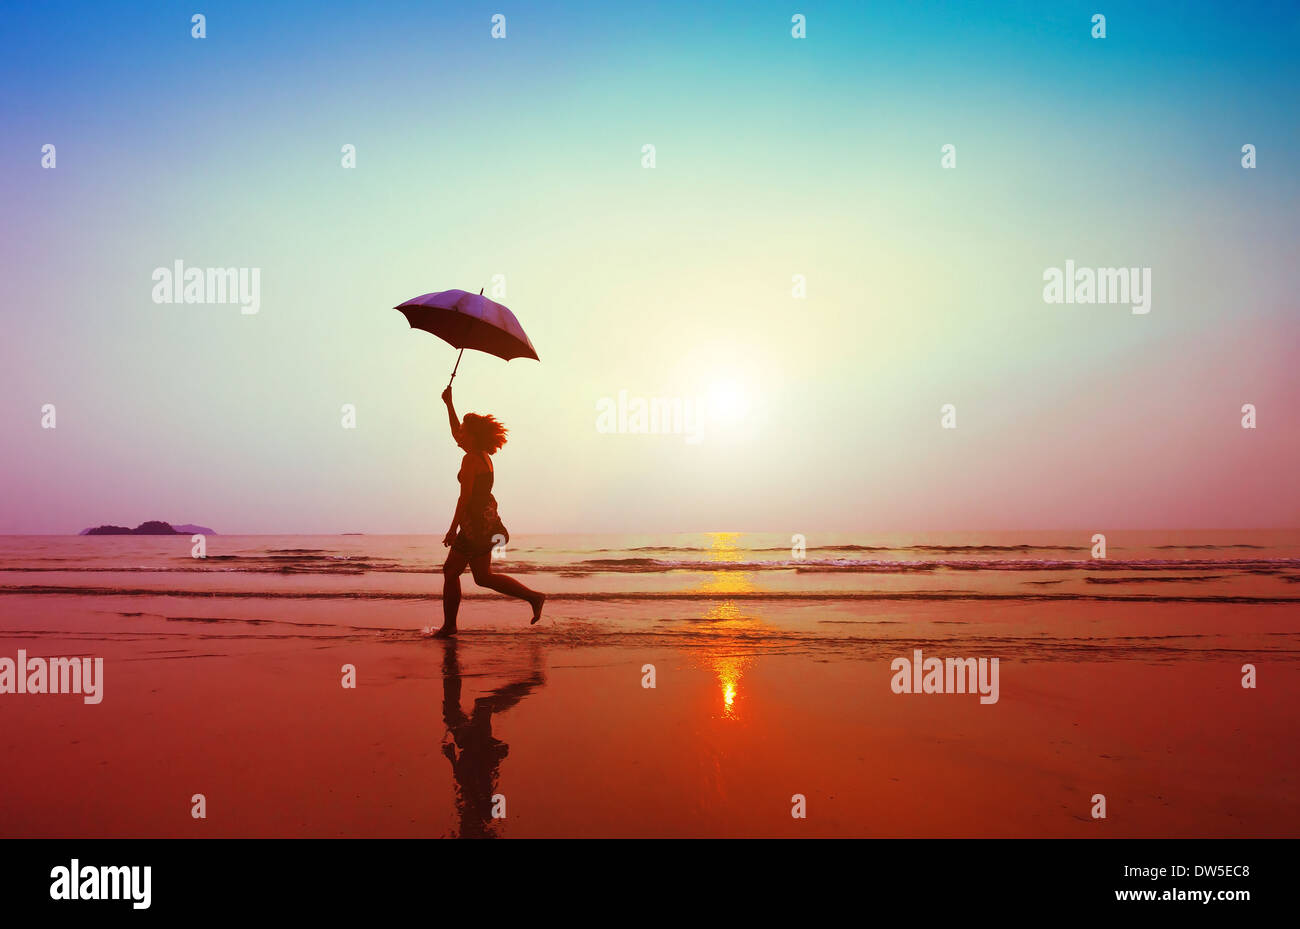 happy woman jumping with umbrella on the beach - Stock Image